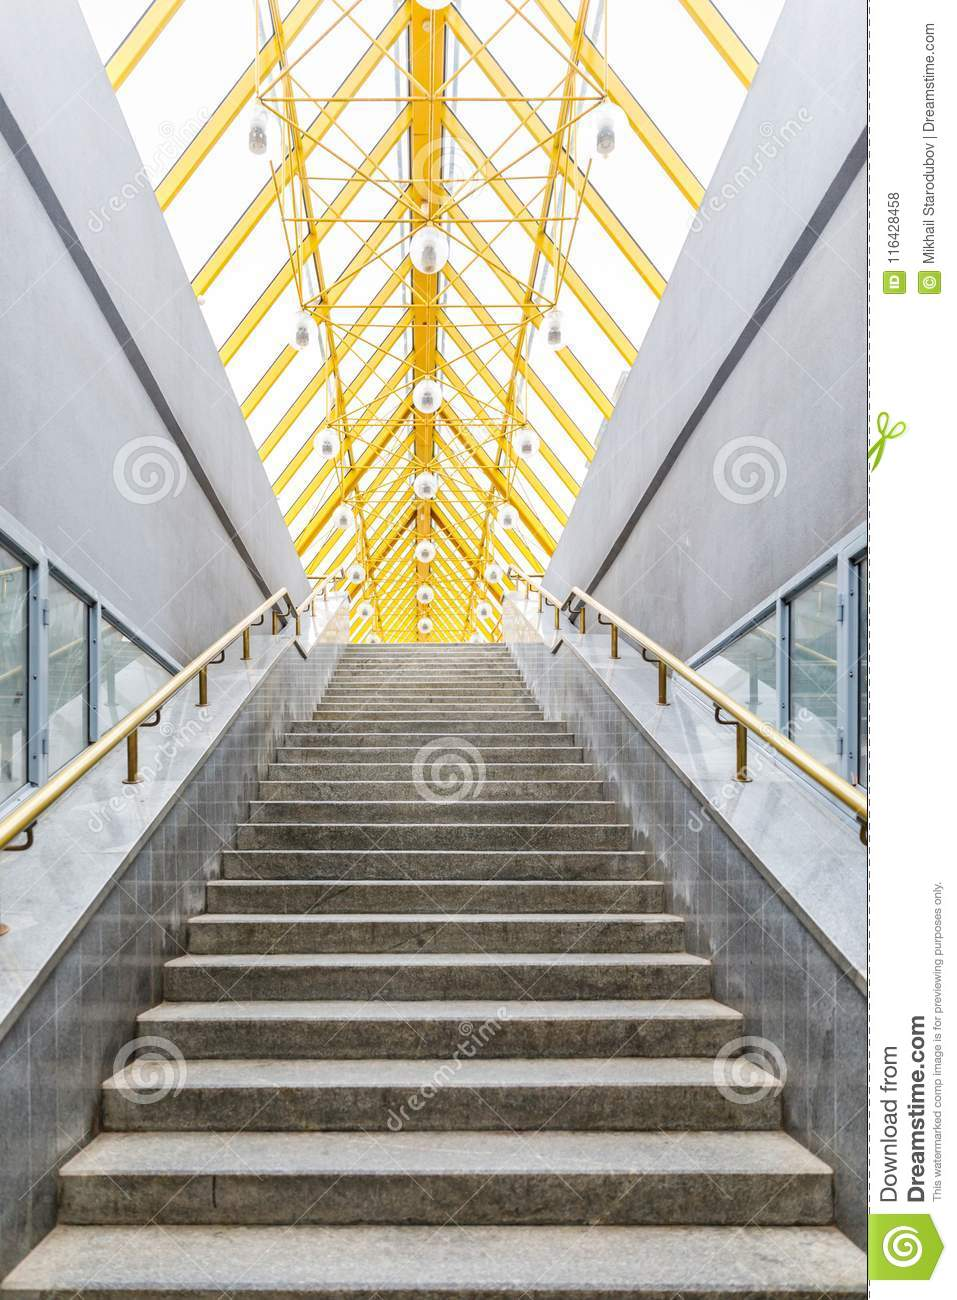 Architectural Abstract And Perspective View, Metal Structures With Glass  Roof And Stairs